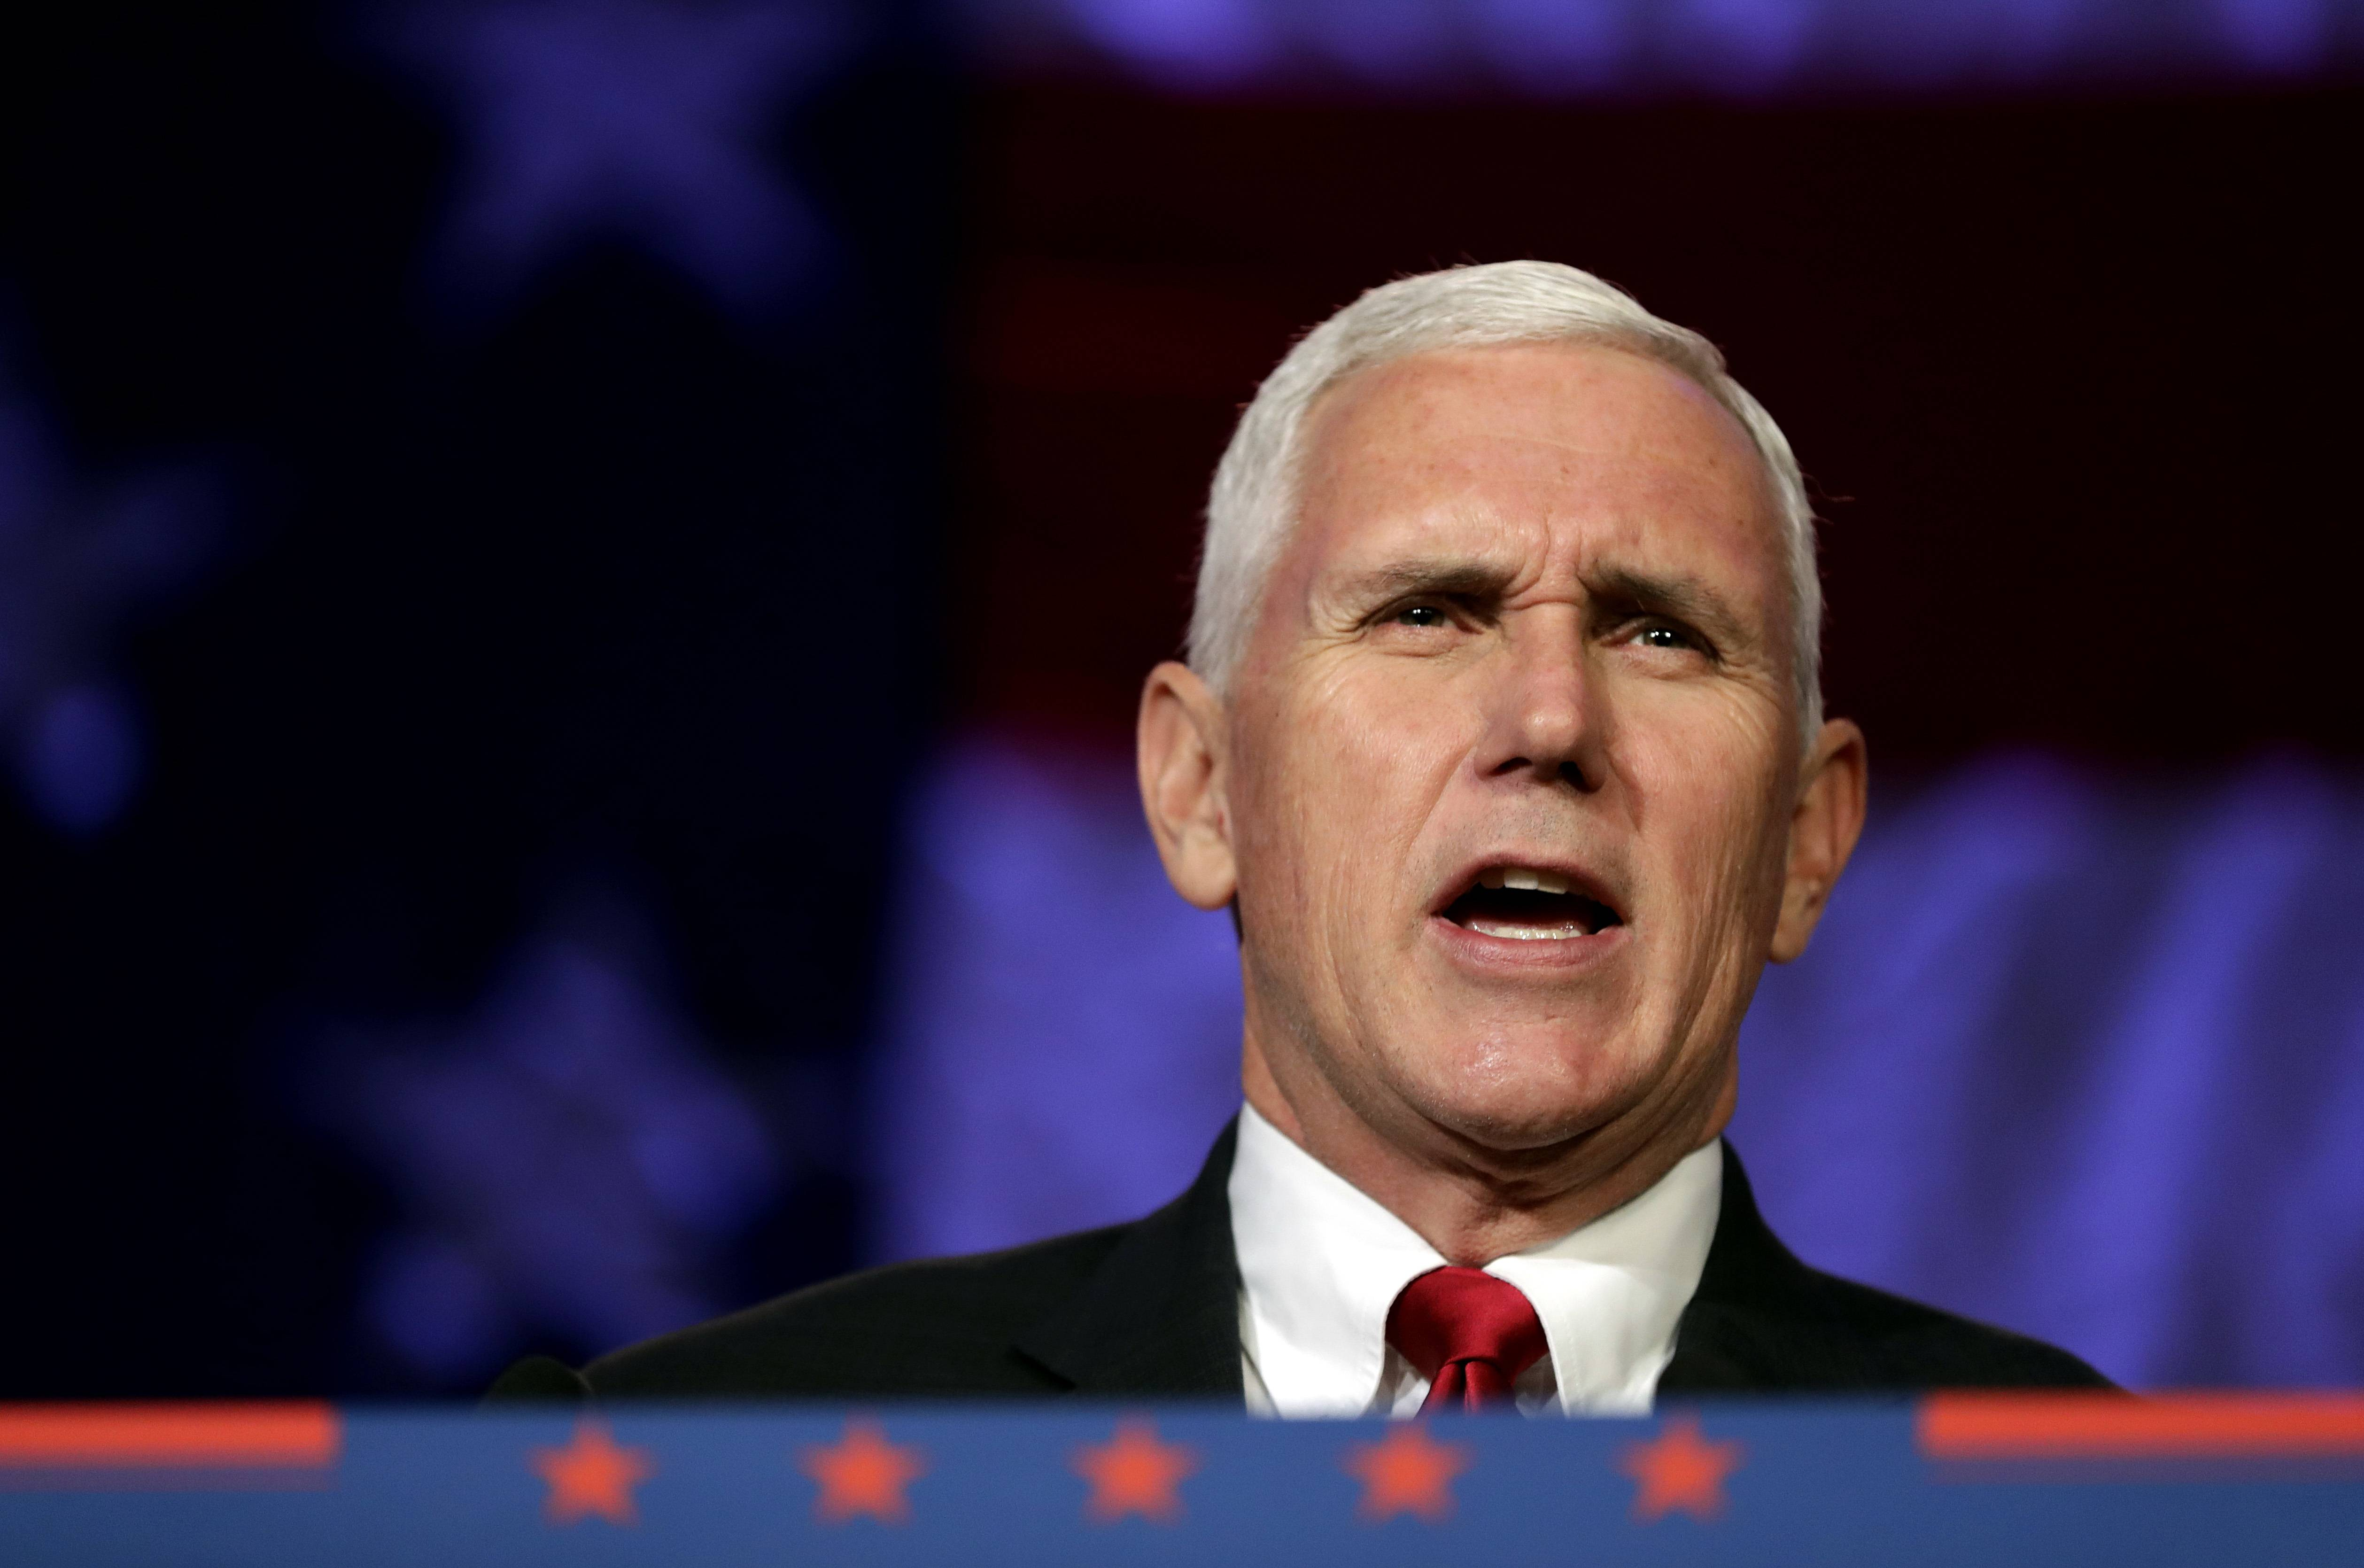 Vice President Mike Pence will be in the suburbs Friday for a fundraiser for U.S. Rep. Peter Roskam and later a speech on tax cuts in Rosemont.